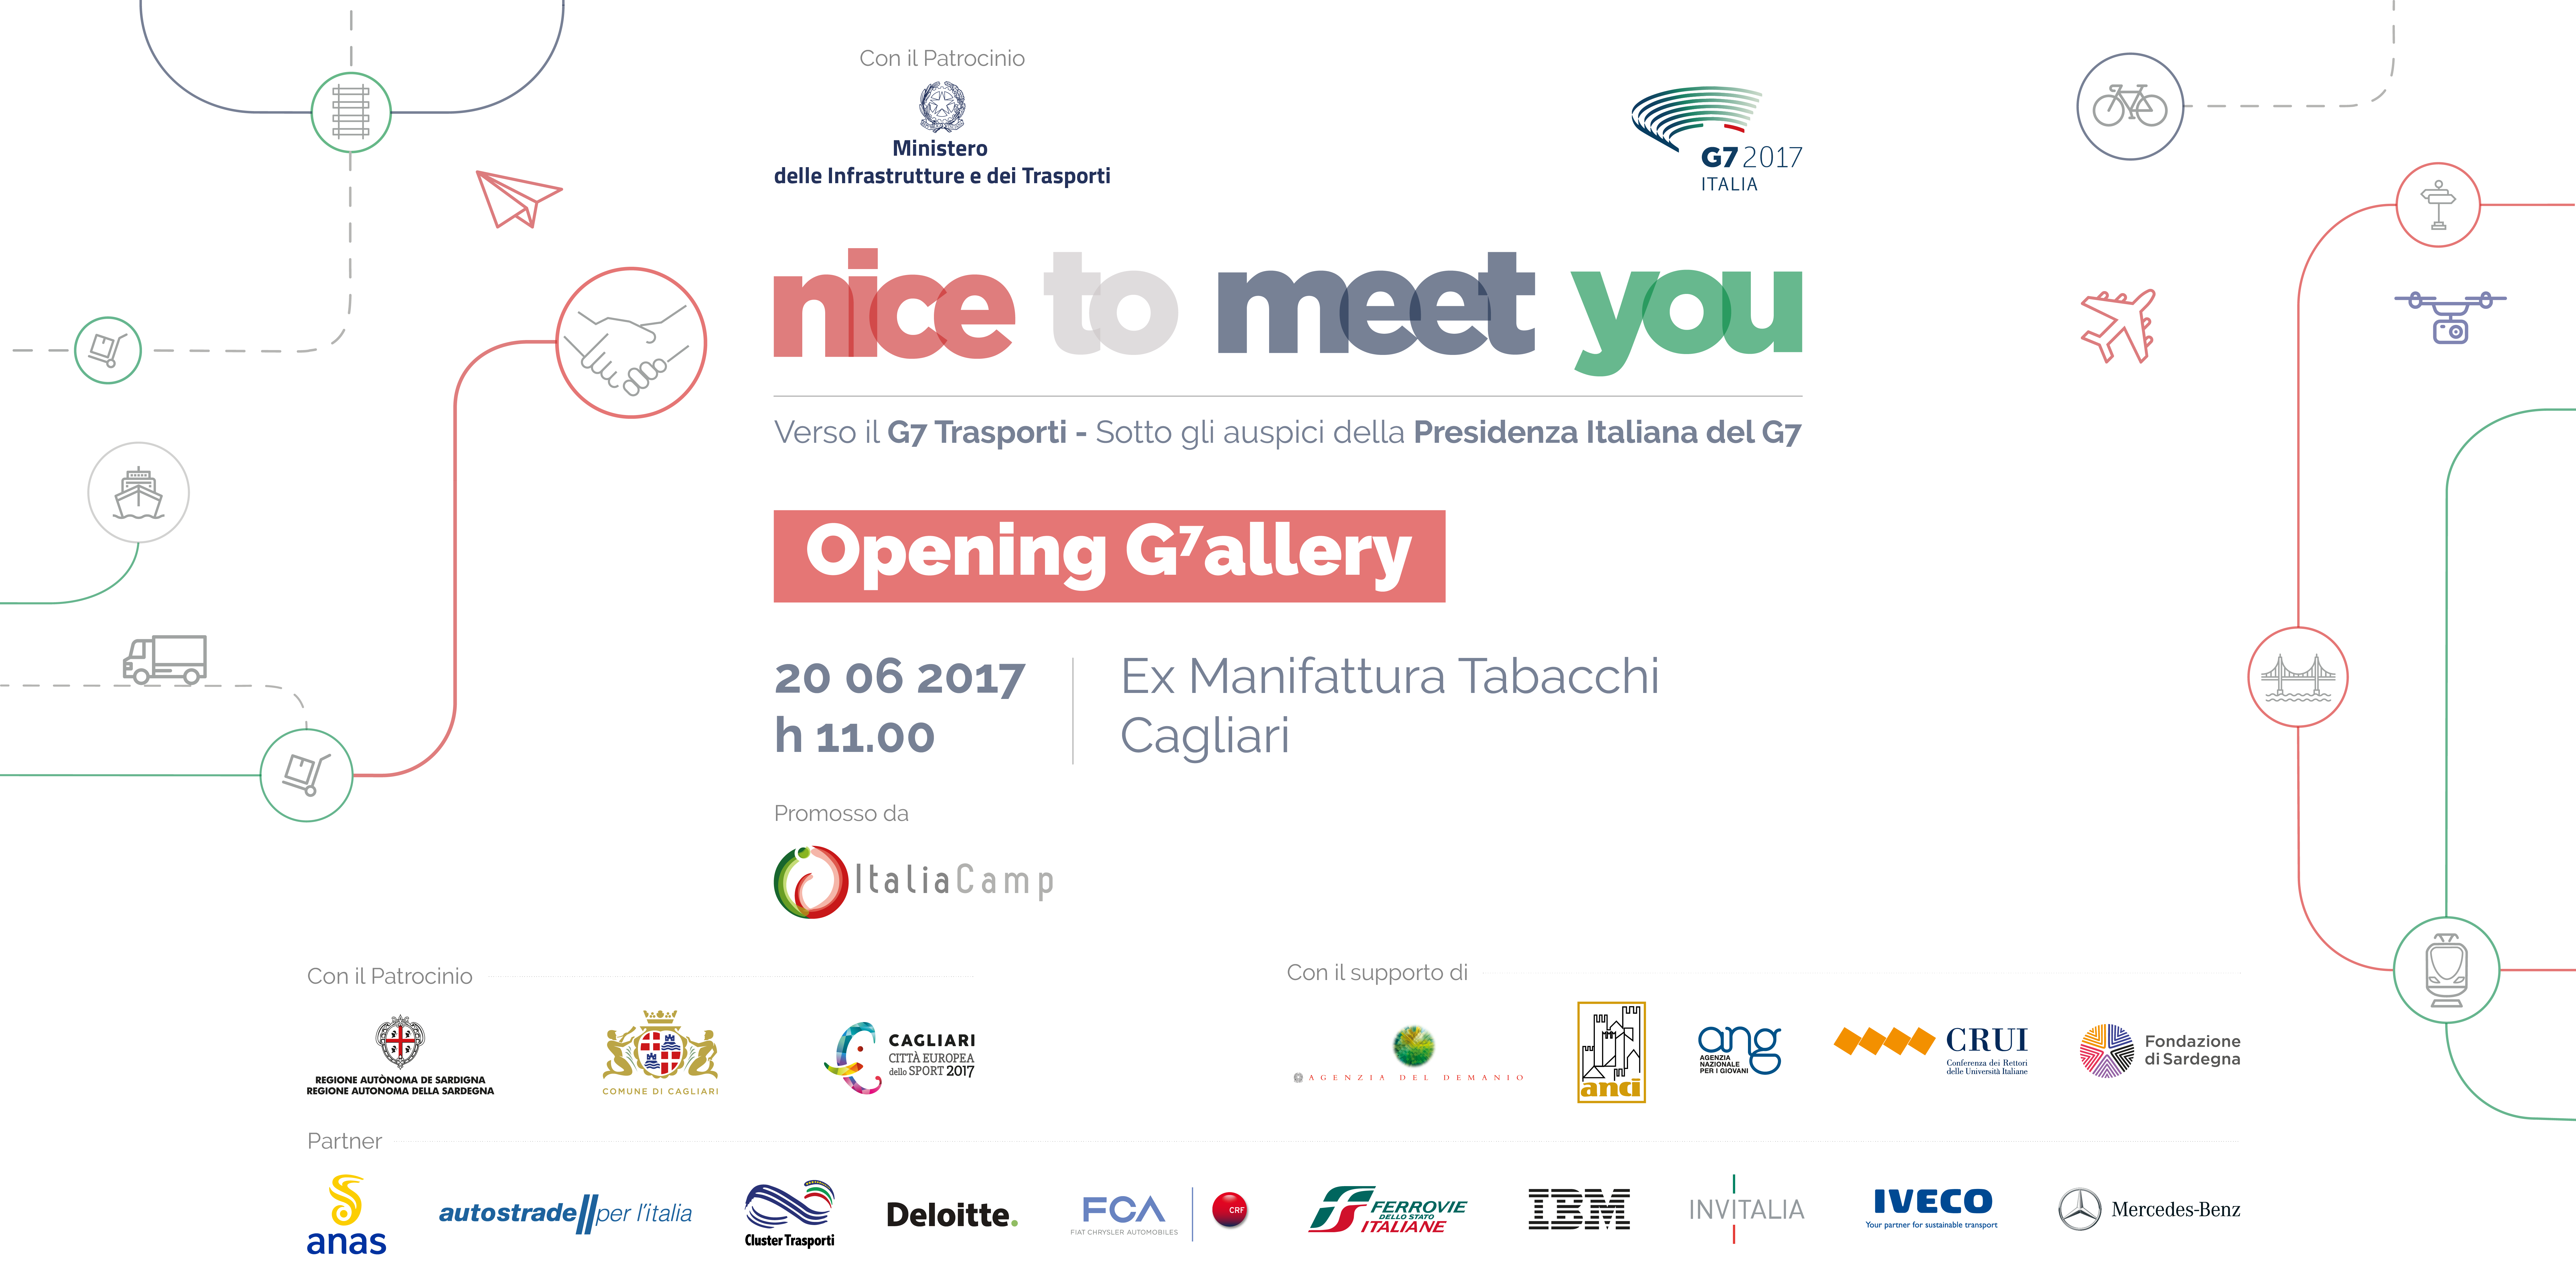 opening g7allery